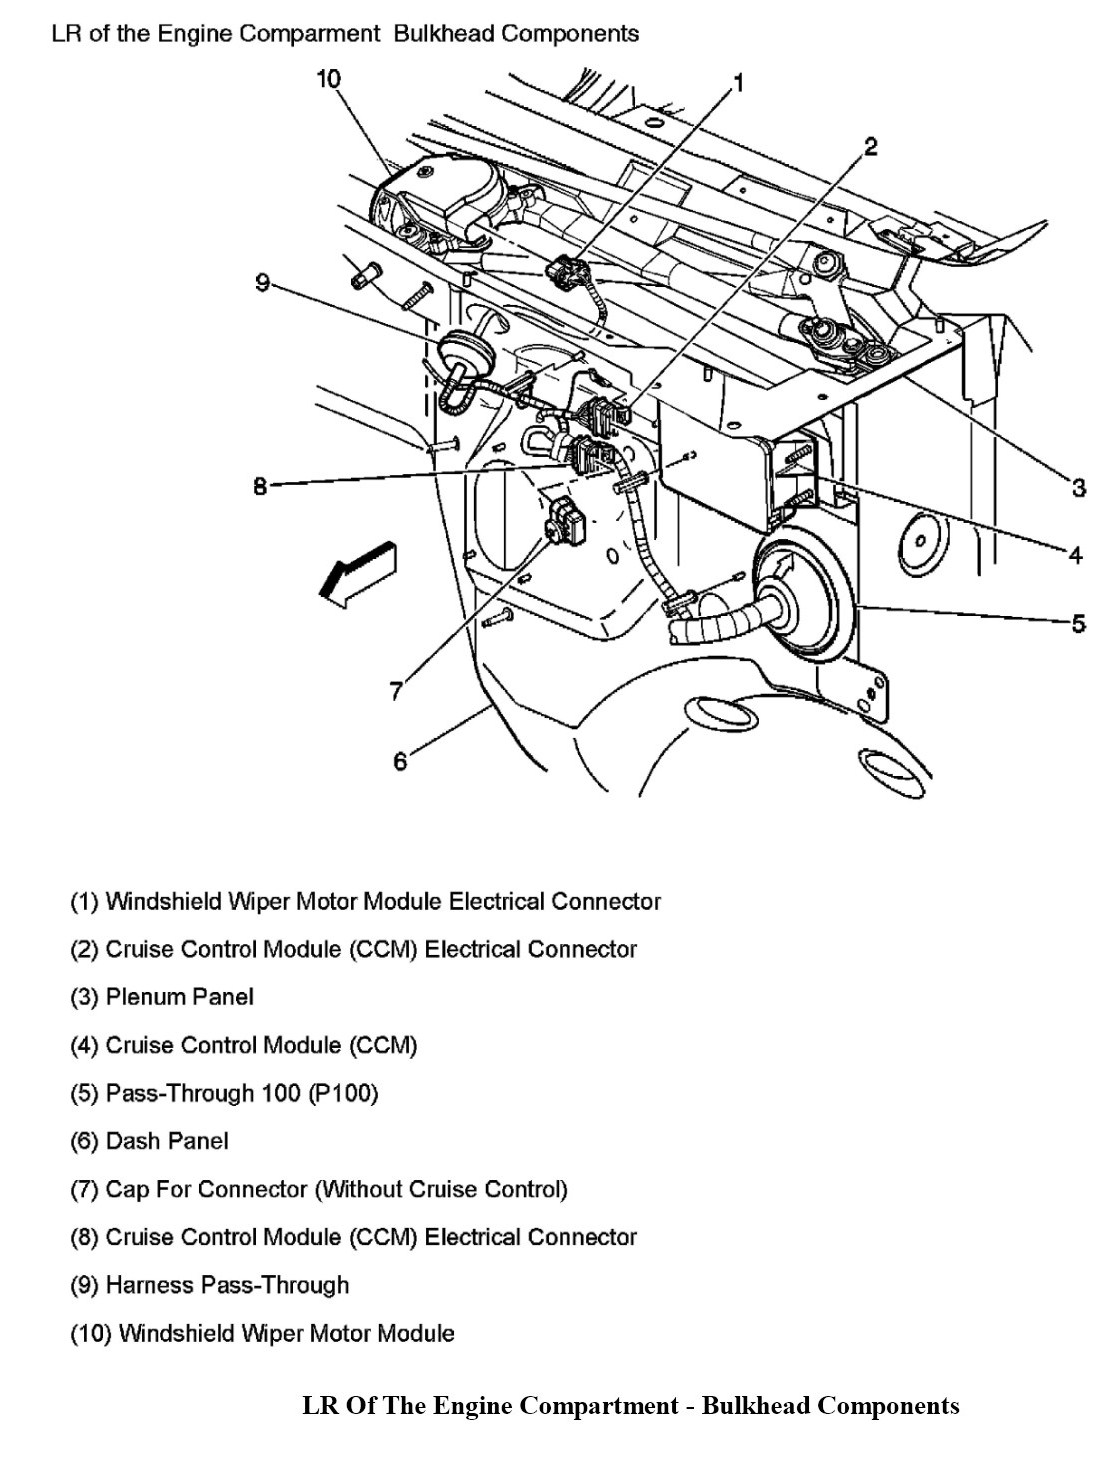 I Need To Replace My Wiper Relay Switch On A 03 Silverado